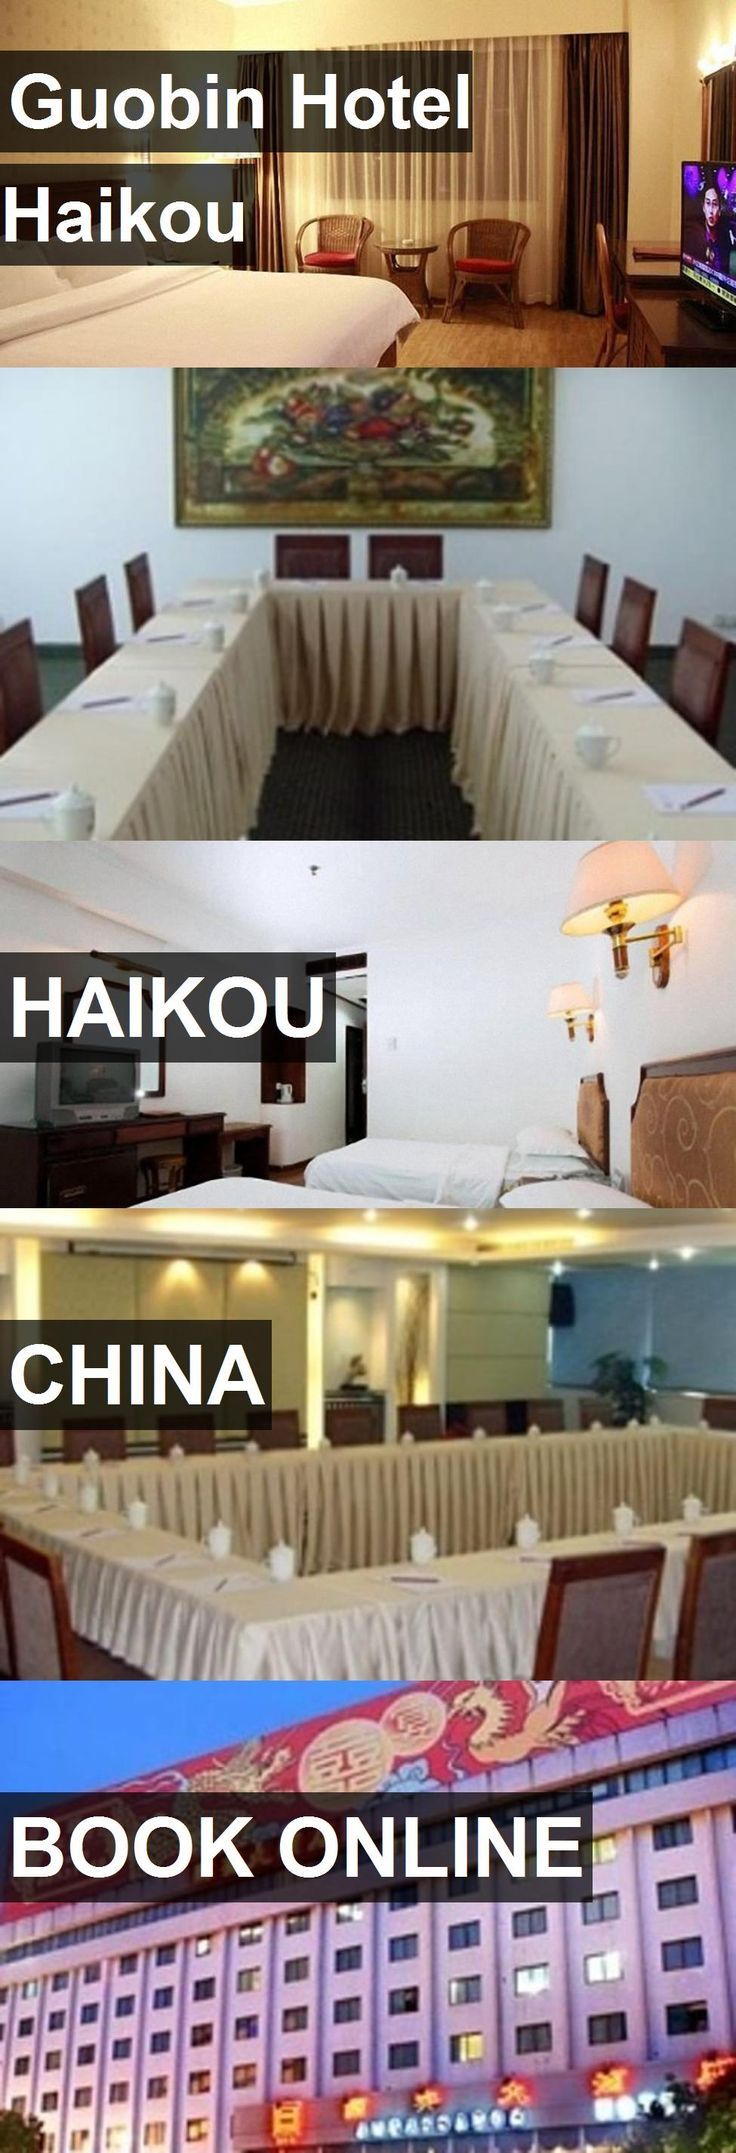 Hotel Guobin Hotel Haikou in Haikou, China. For more information, photos, reviews and best prices please follow the link. #China #Haikou #GuobinHotelHaikou #hotel #travel #vacation